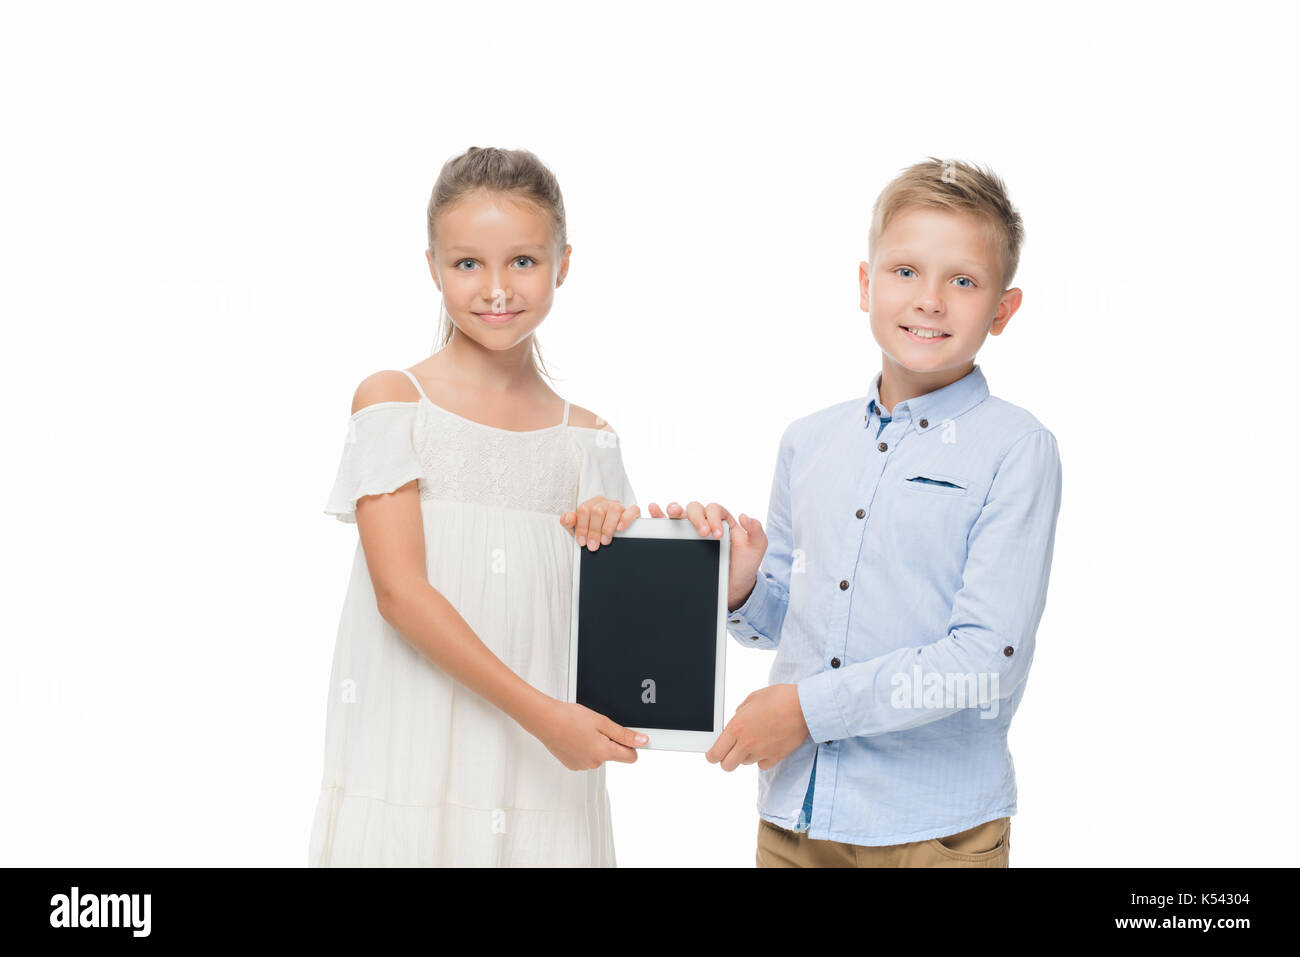 kids with digital tablet - Stock Image